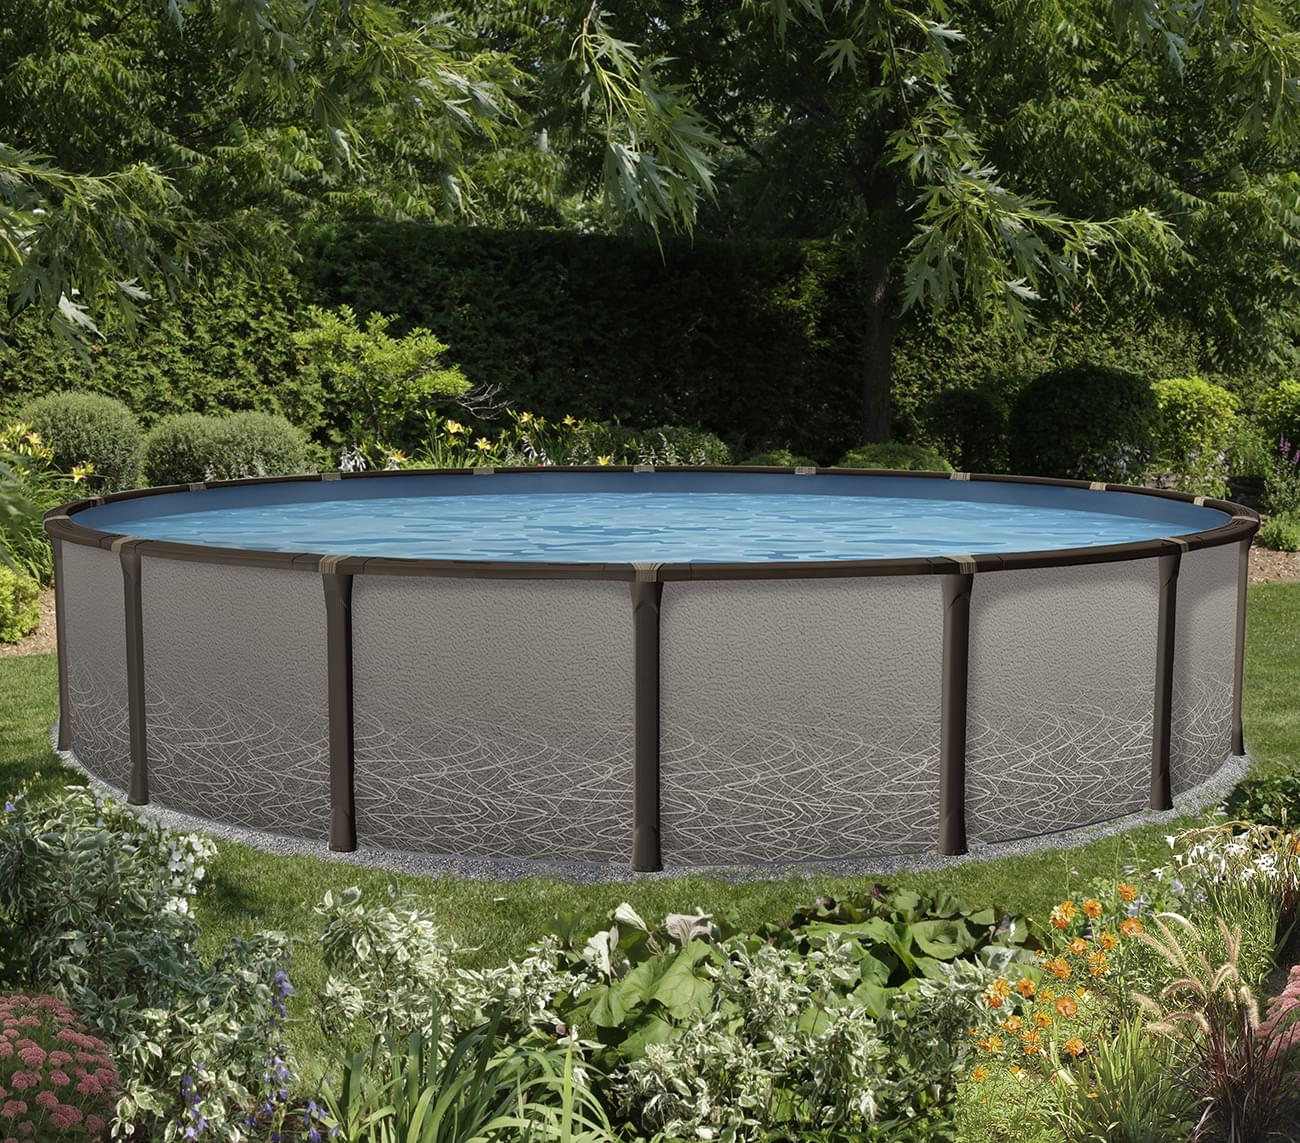 Element 21 Round Above Ground Pool Pool Supplies Canada